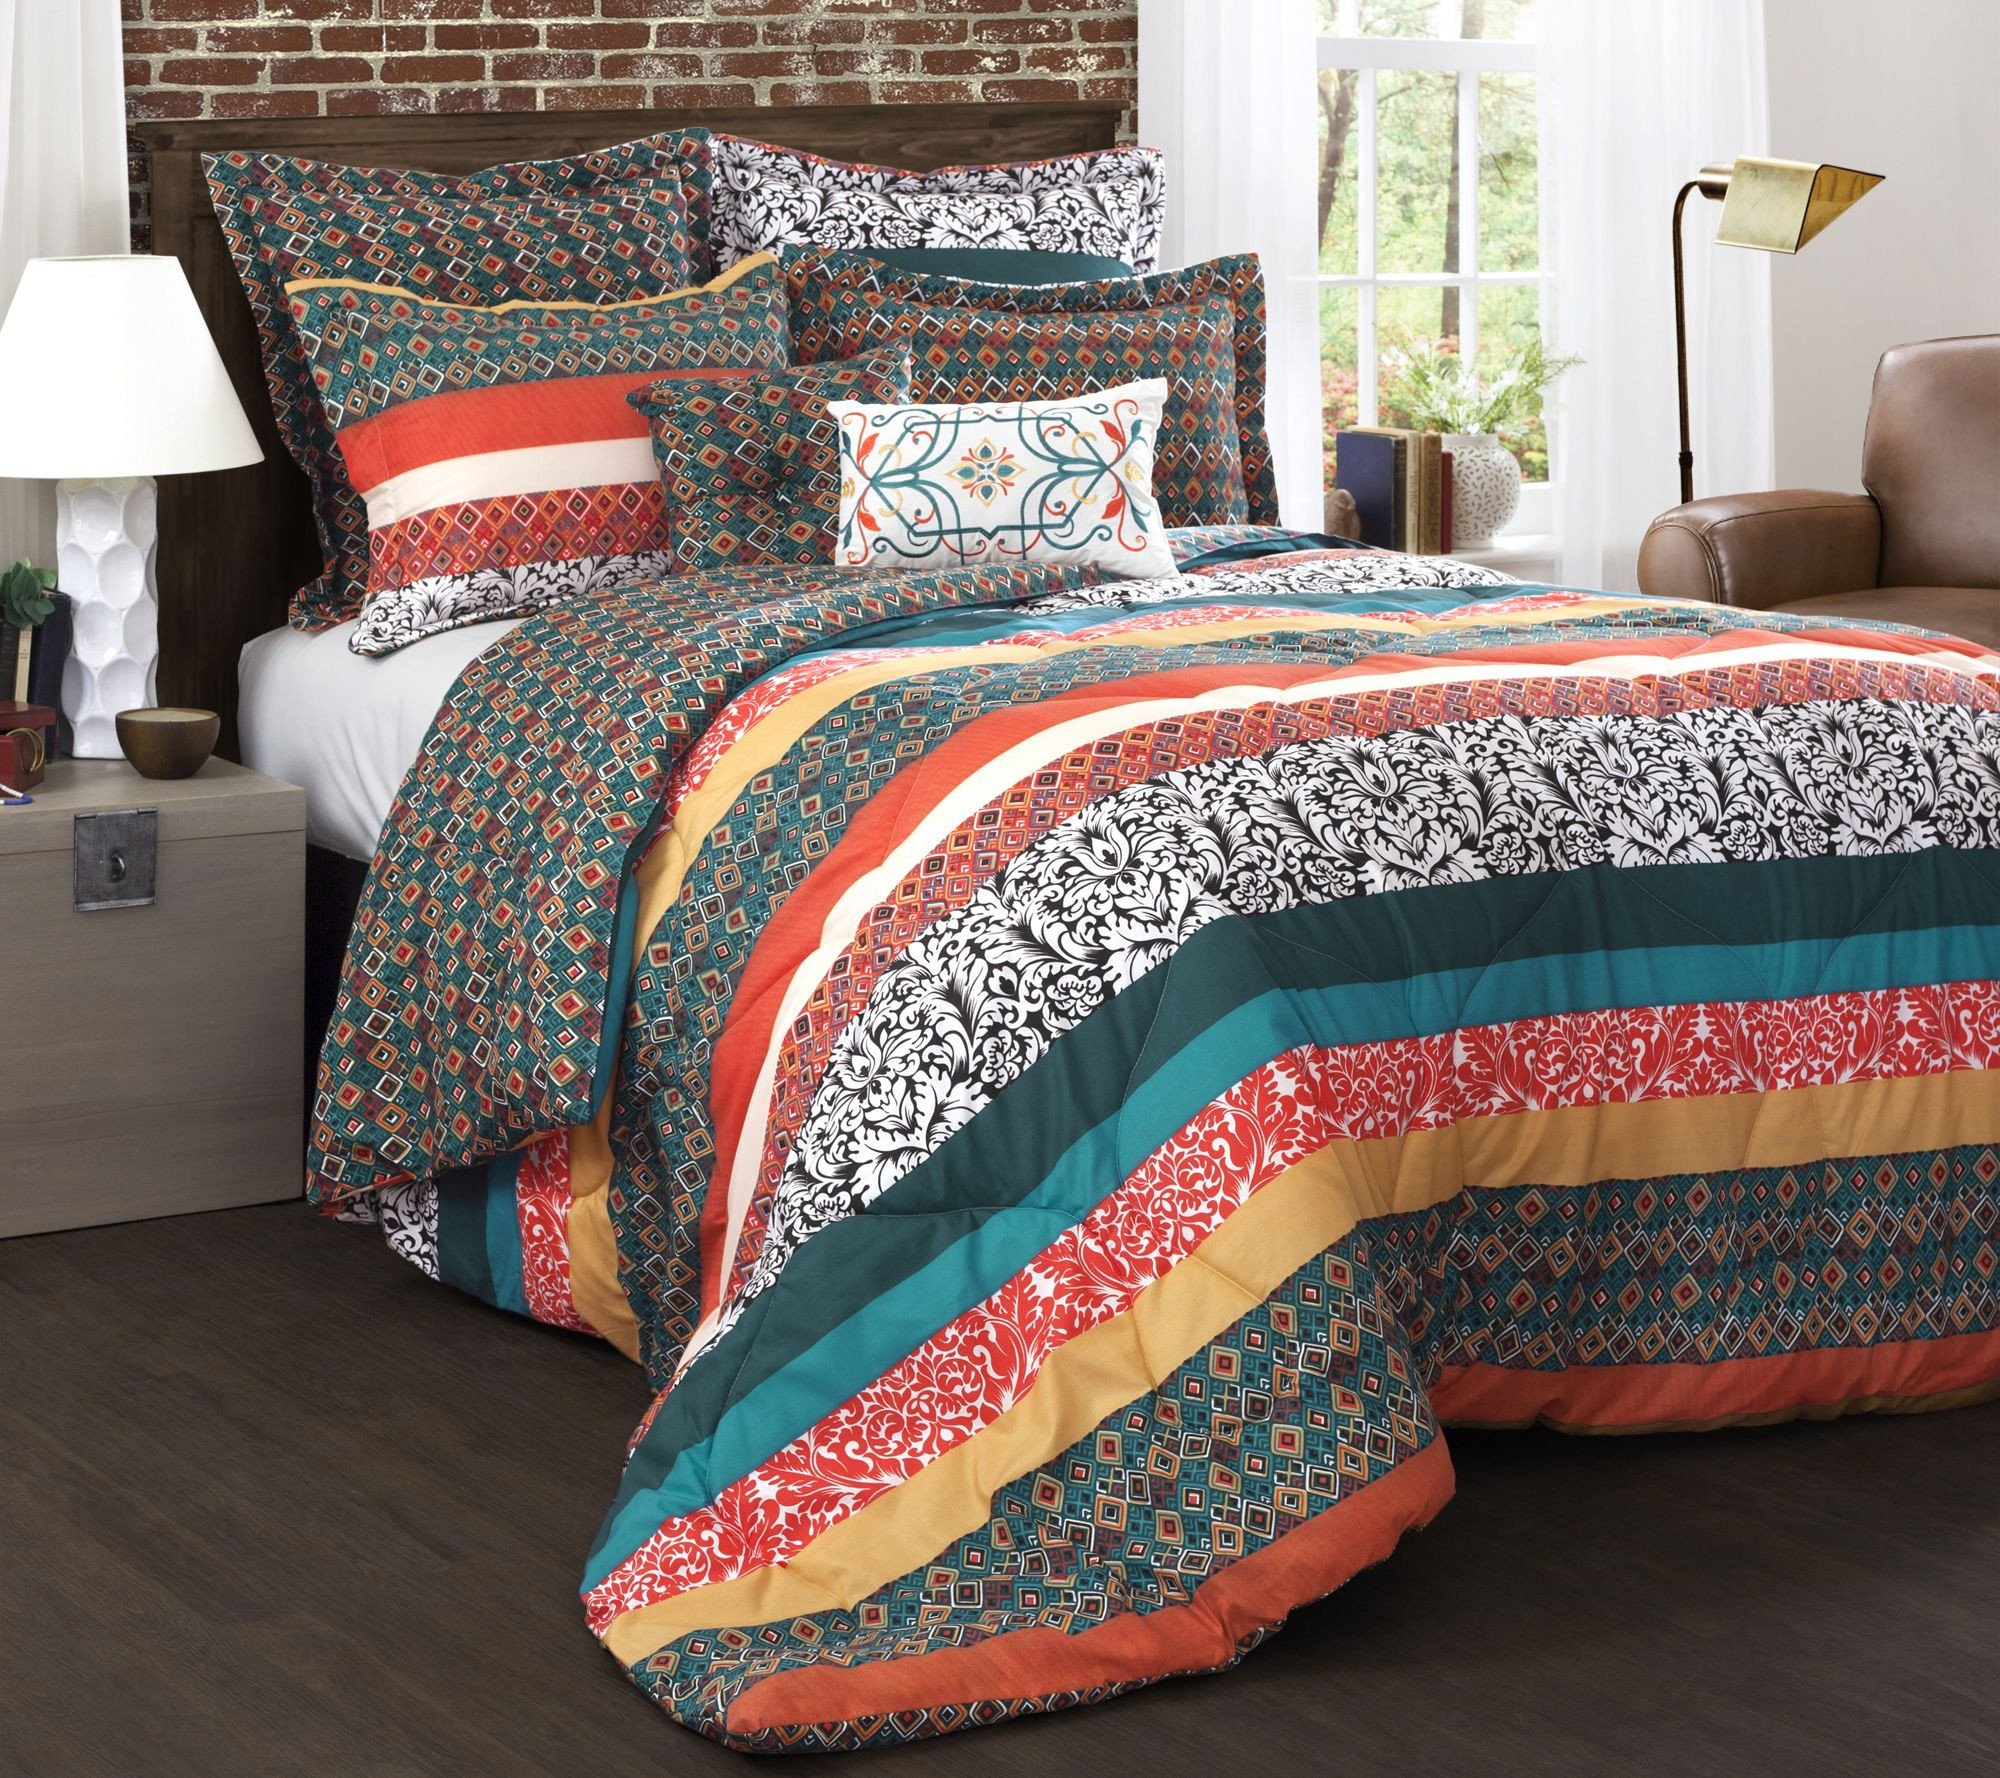 King Bedroom Comforter Set Beautiful Boho Stripe 7 Piece King forter Set by Lush Decor — Qvc